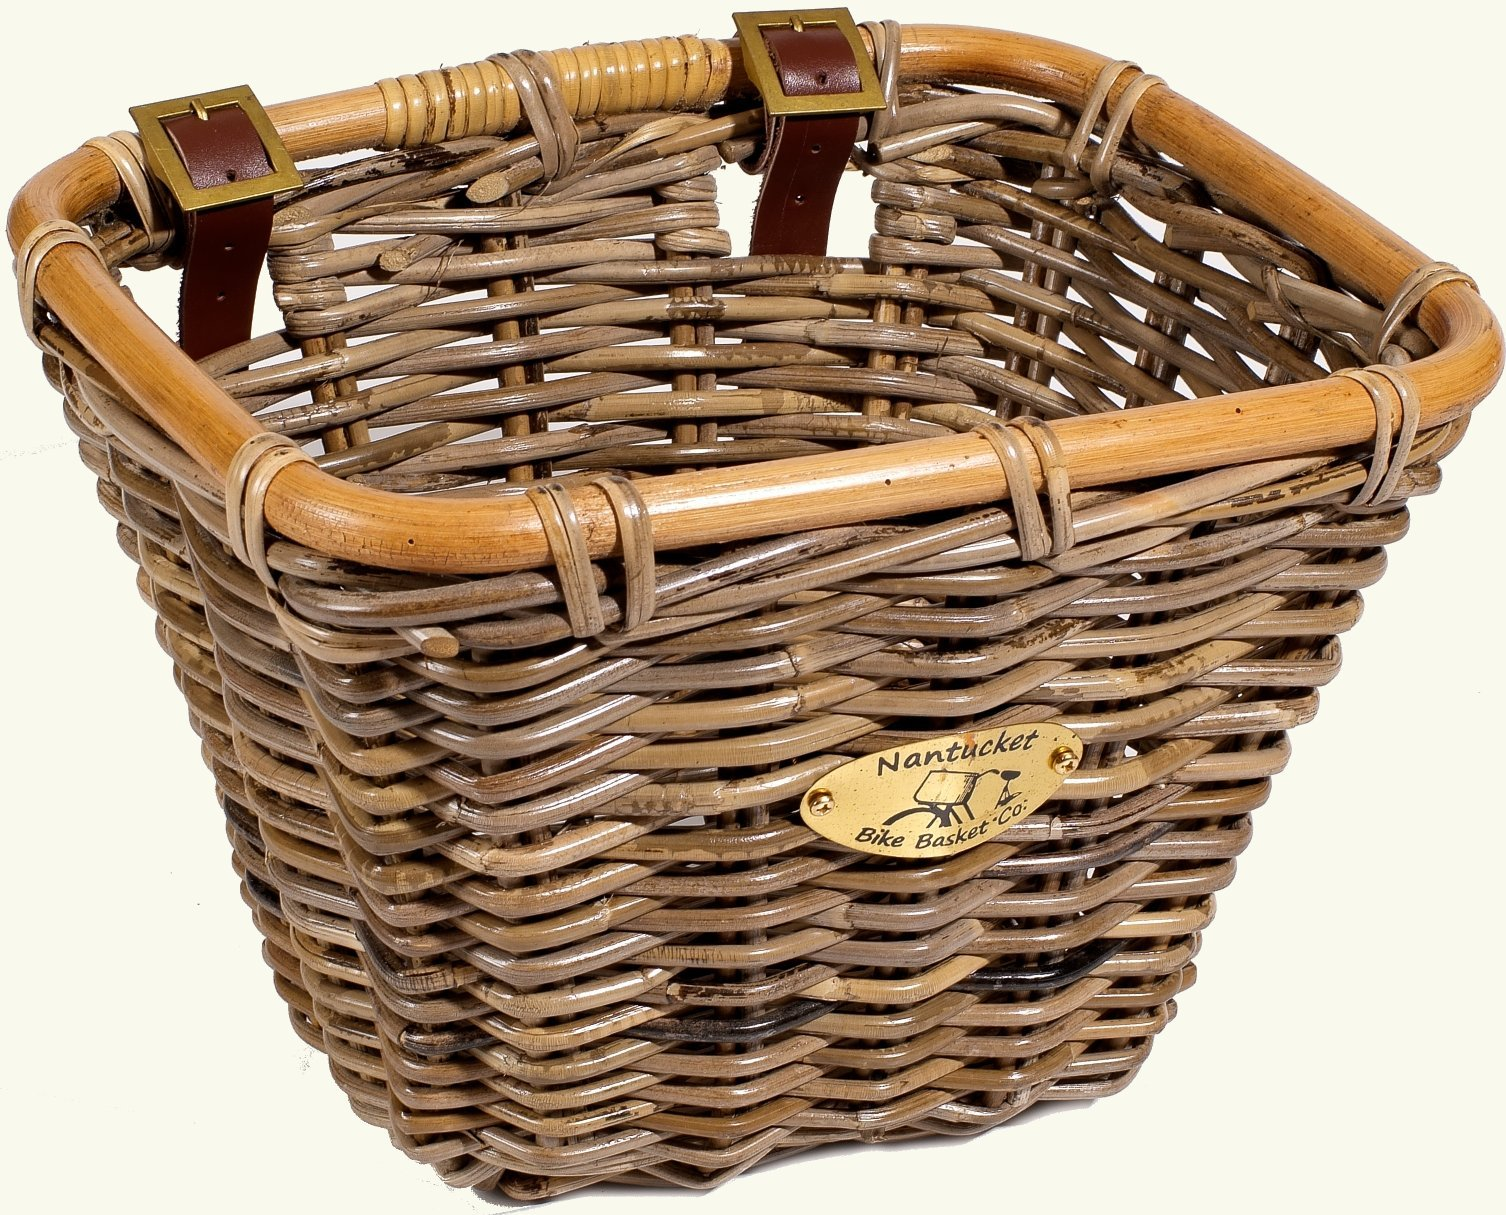 Nantucket Bike Baskets Tuckernuck Rattan Collection Rectangle